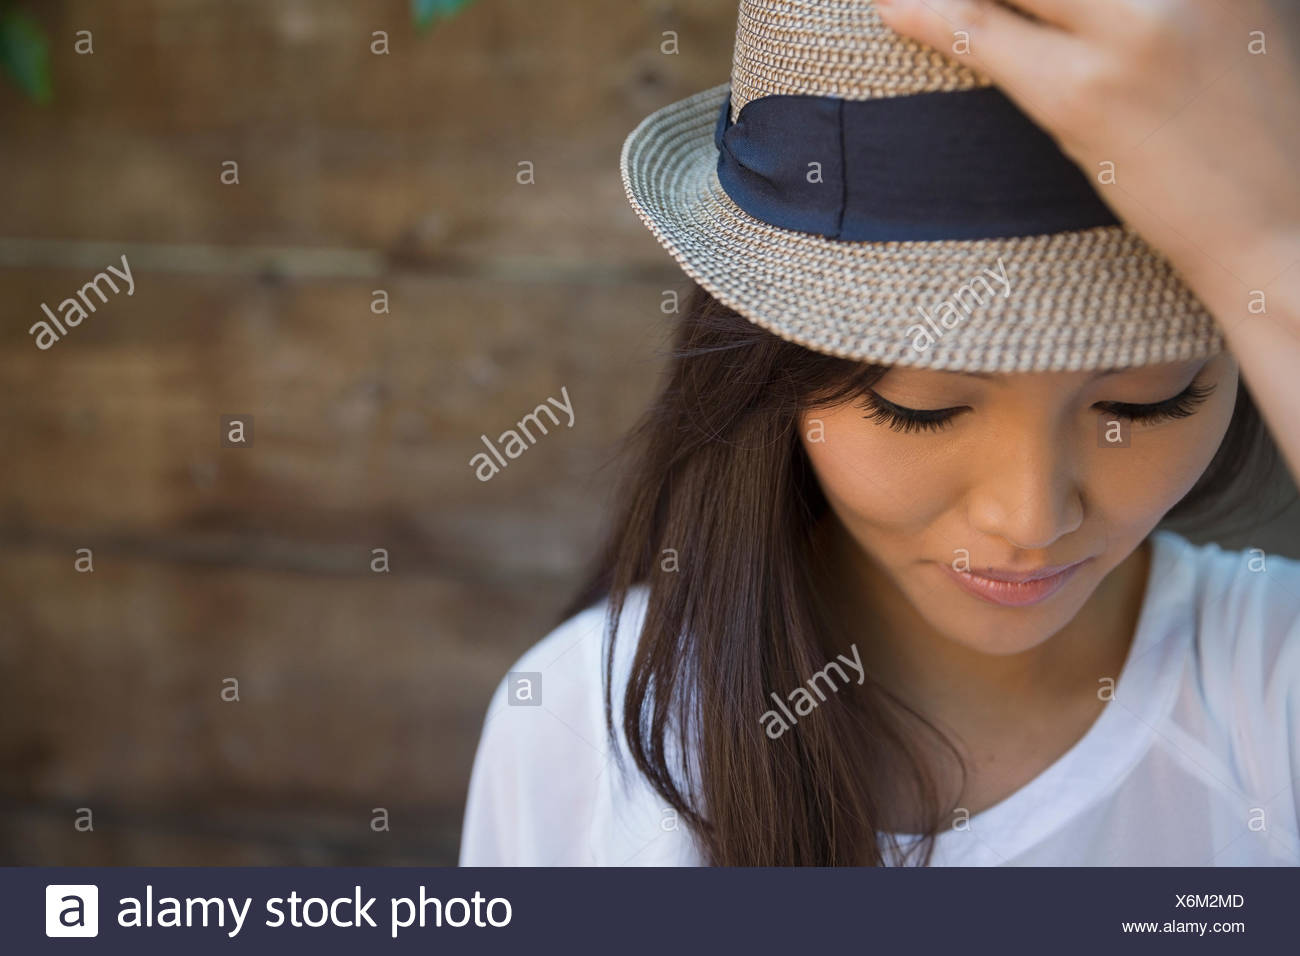 591f2dad5d263 Portrait serious woman in hat looking down - Stock Image